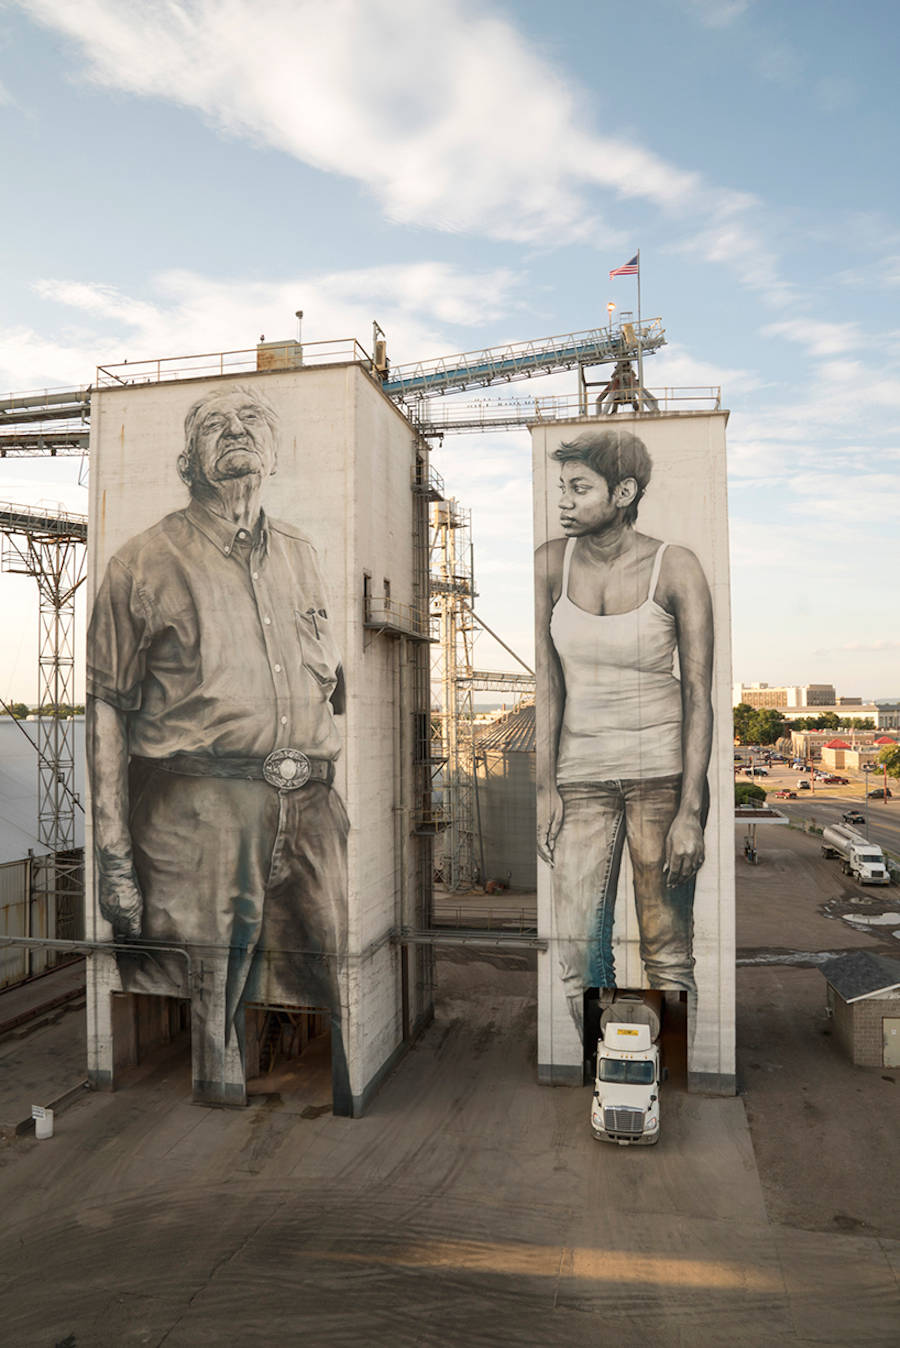 Gigantic and Realistic Mural Portraits in Arkansas